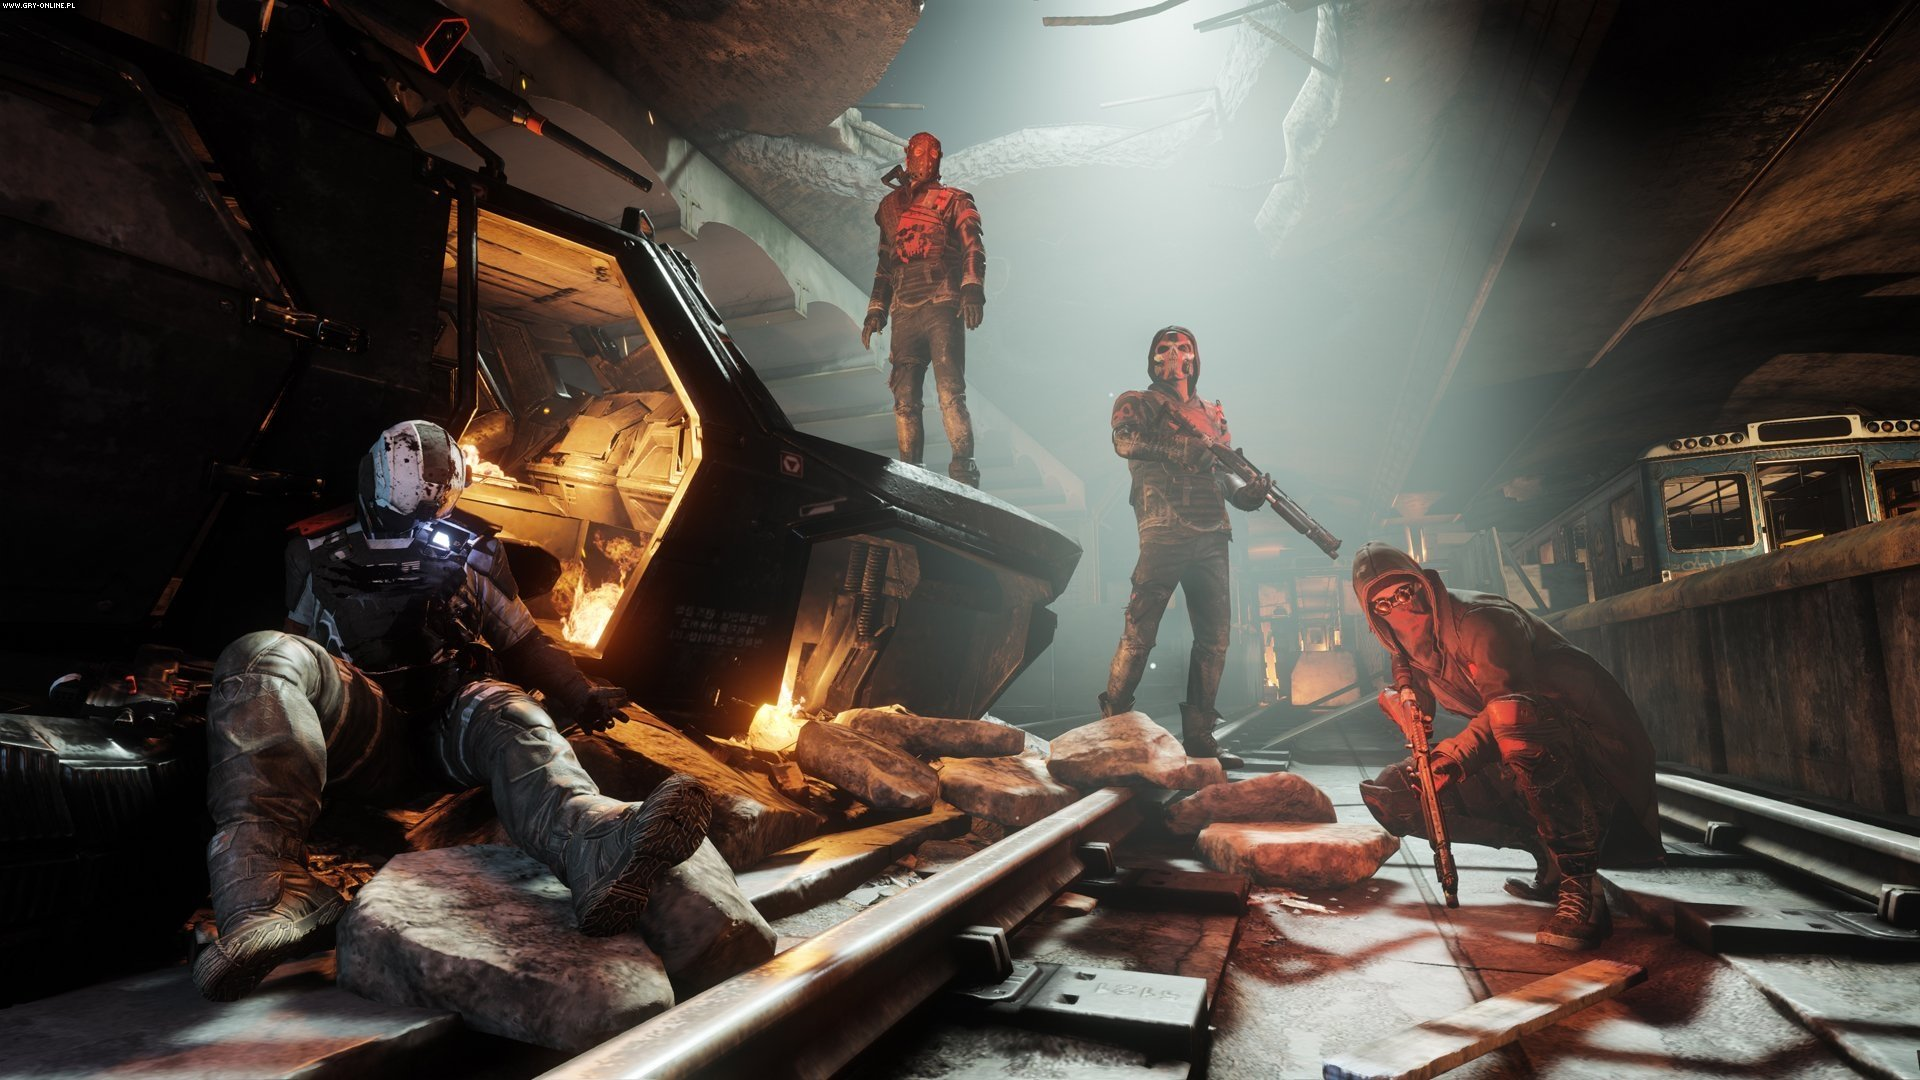 Homefront: The Revolution PC, PS4, XONE Games Image 10/43, Deep Silver Dambuster Studios, Deep Silver / Koch Media